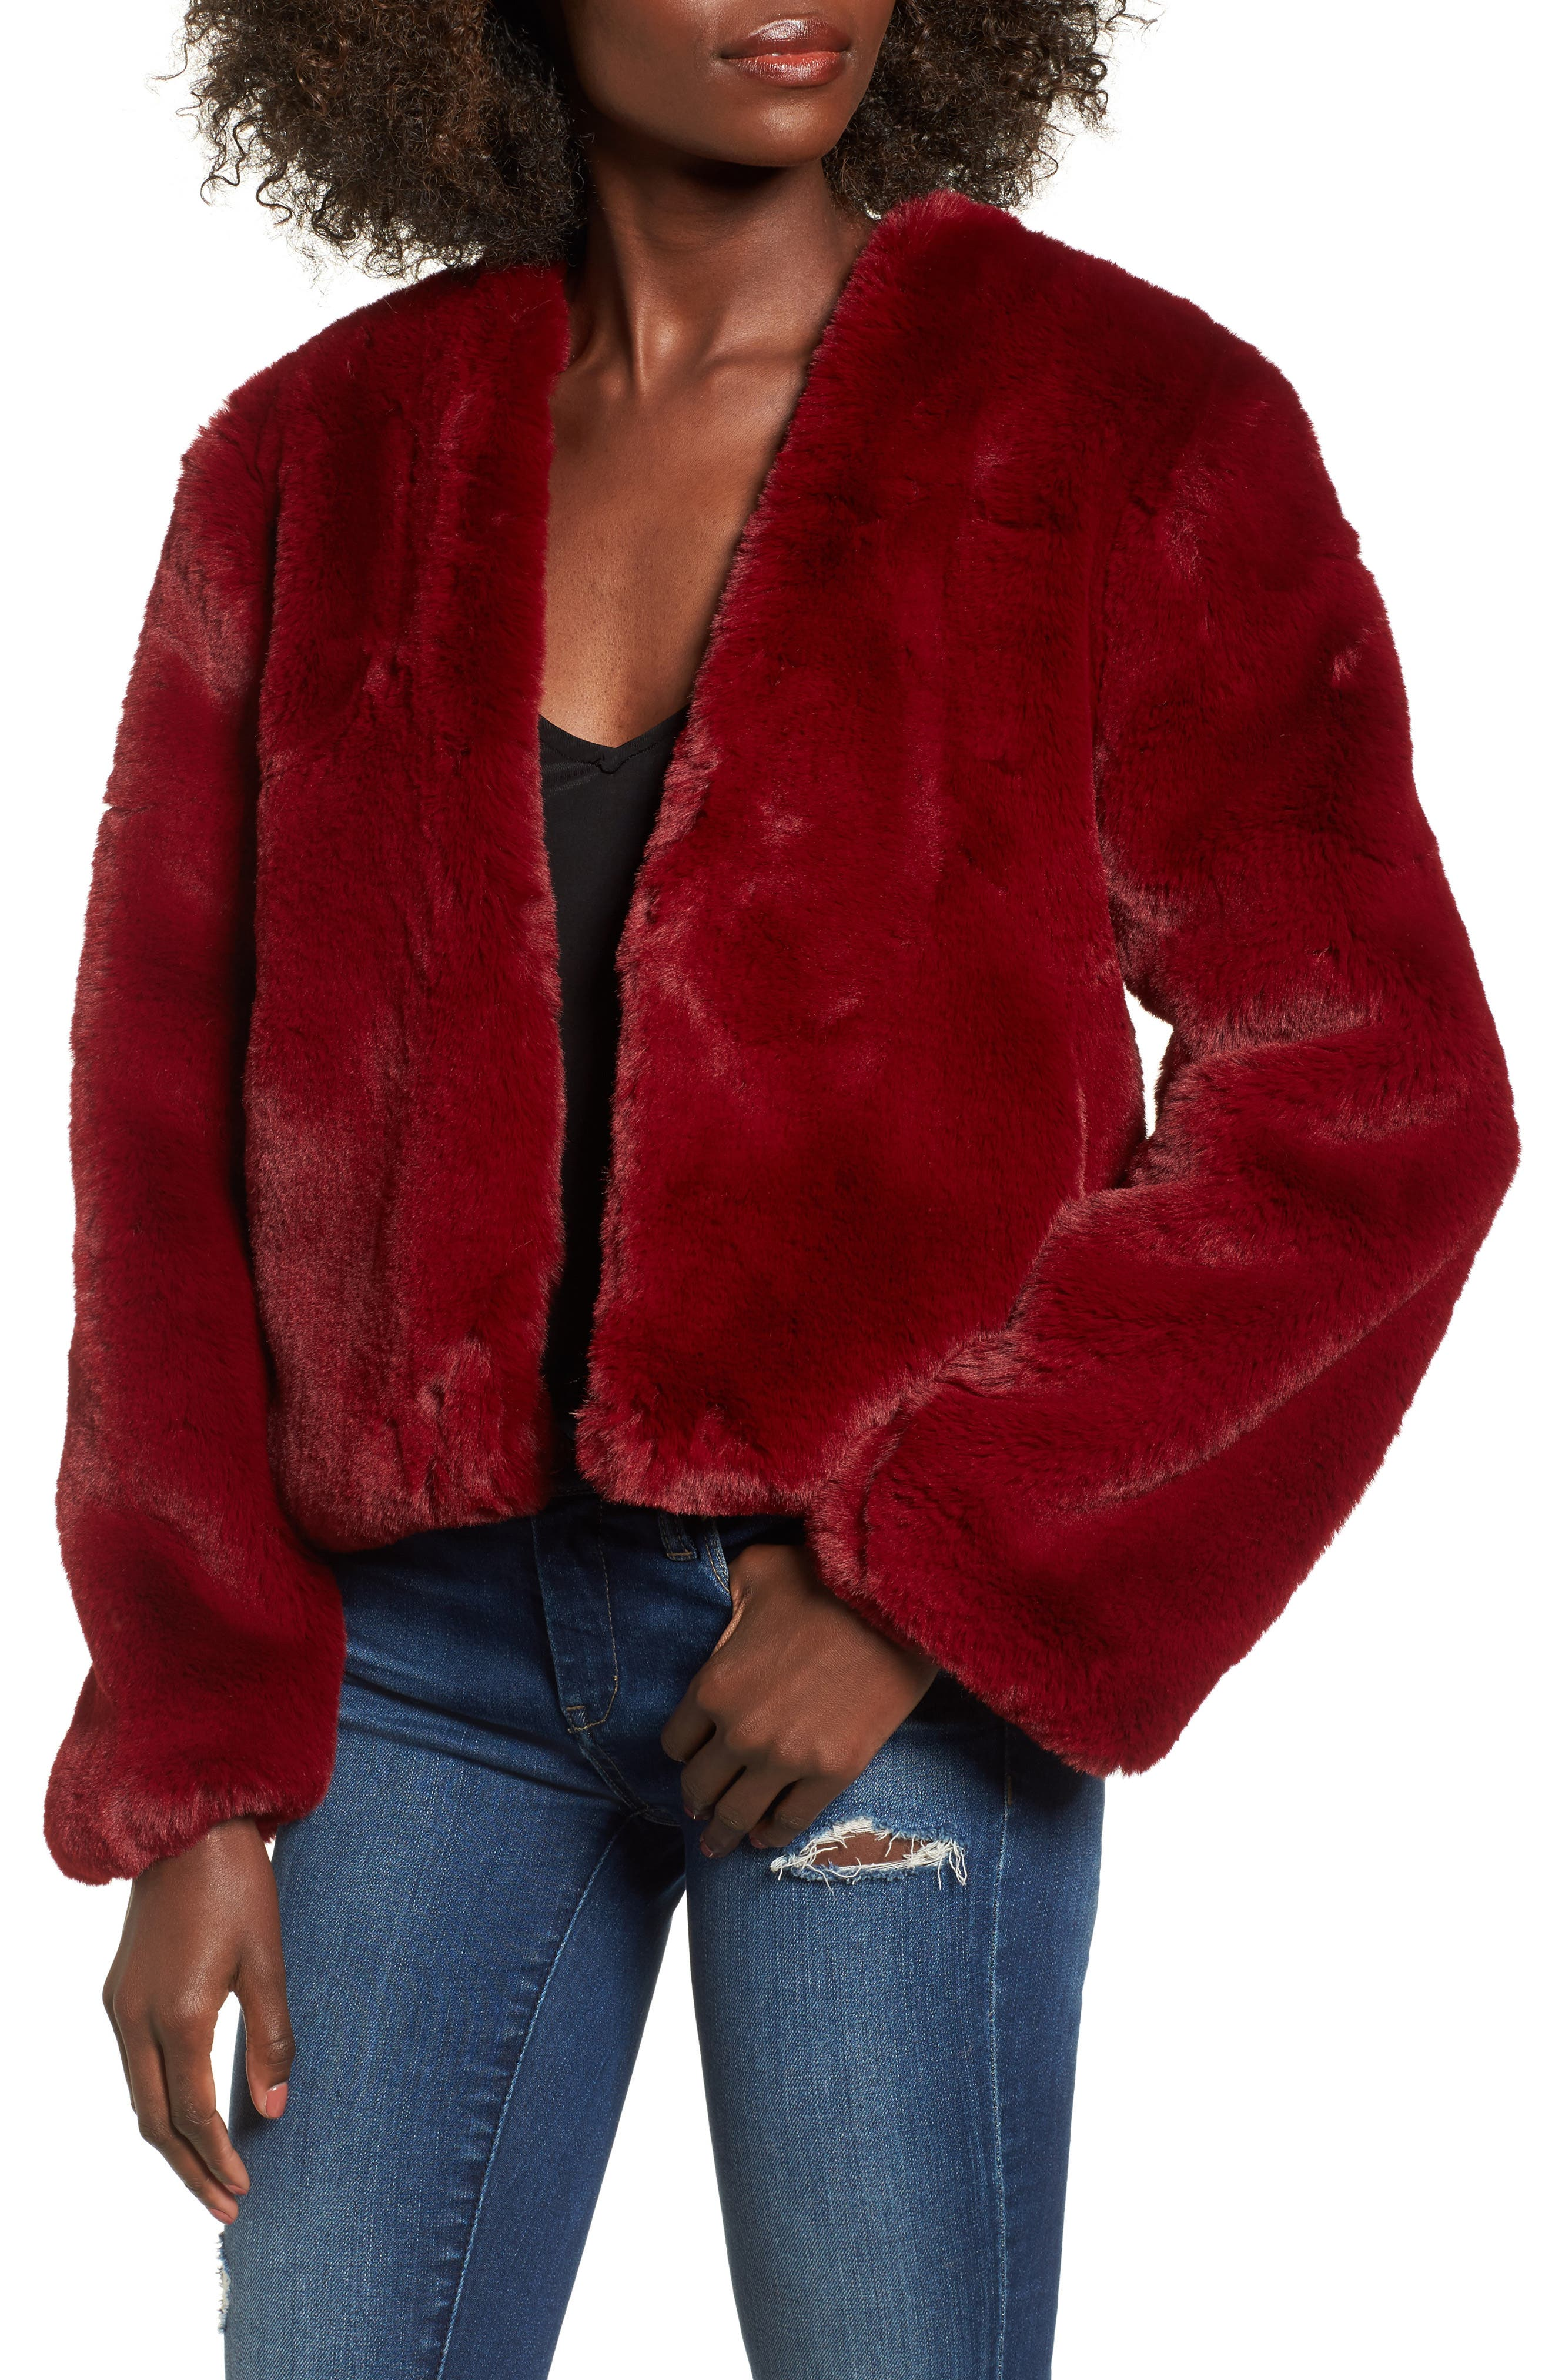 Lonely Hearts Faux Fur Jacket,                         Main,                         color, Ruby